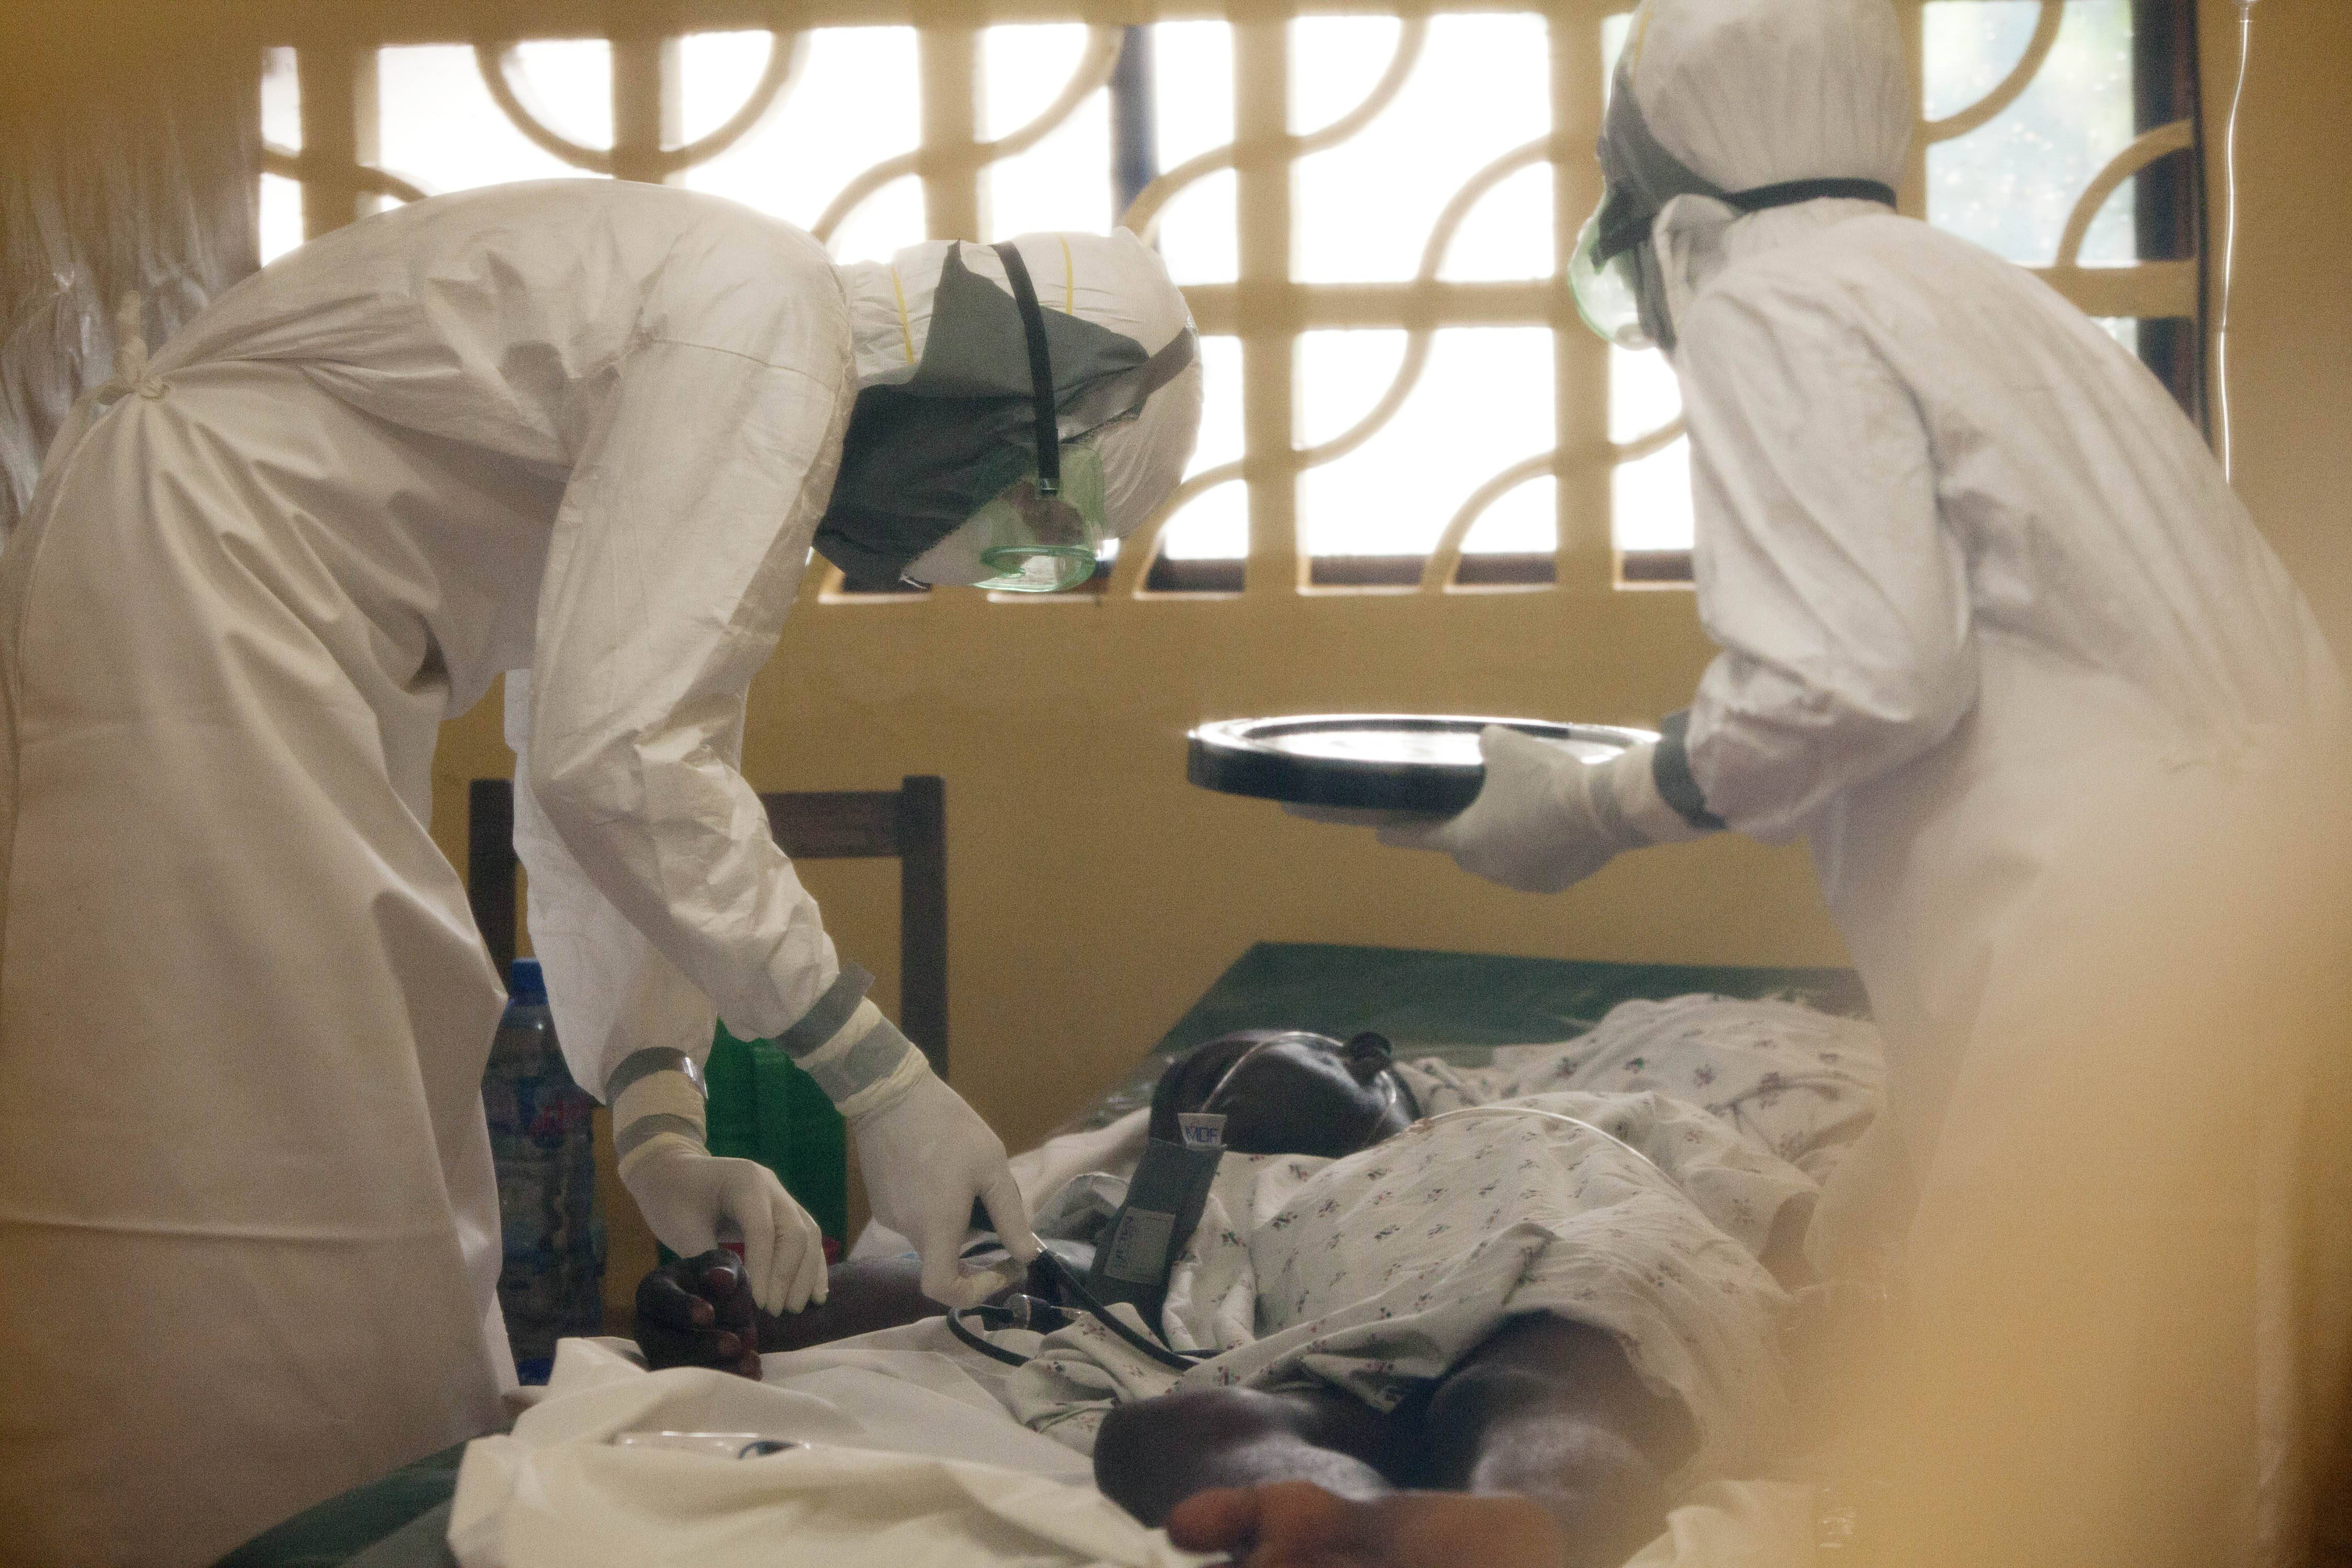 In this 2014 photo provided by the Samaritan's Purse aid organization, Dr. Kent Brantly, left, treats an Ebola patient at the Samaritan's Purse Ebola Case Management Center in Monrovia, Liberia. On Saturday, the North Carolina-based aid organization said Brantly tested positive for the disease and was being treated at a hospital in Monrovia.